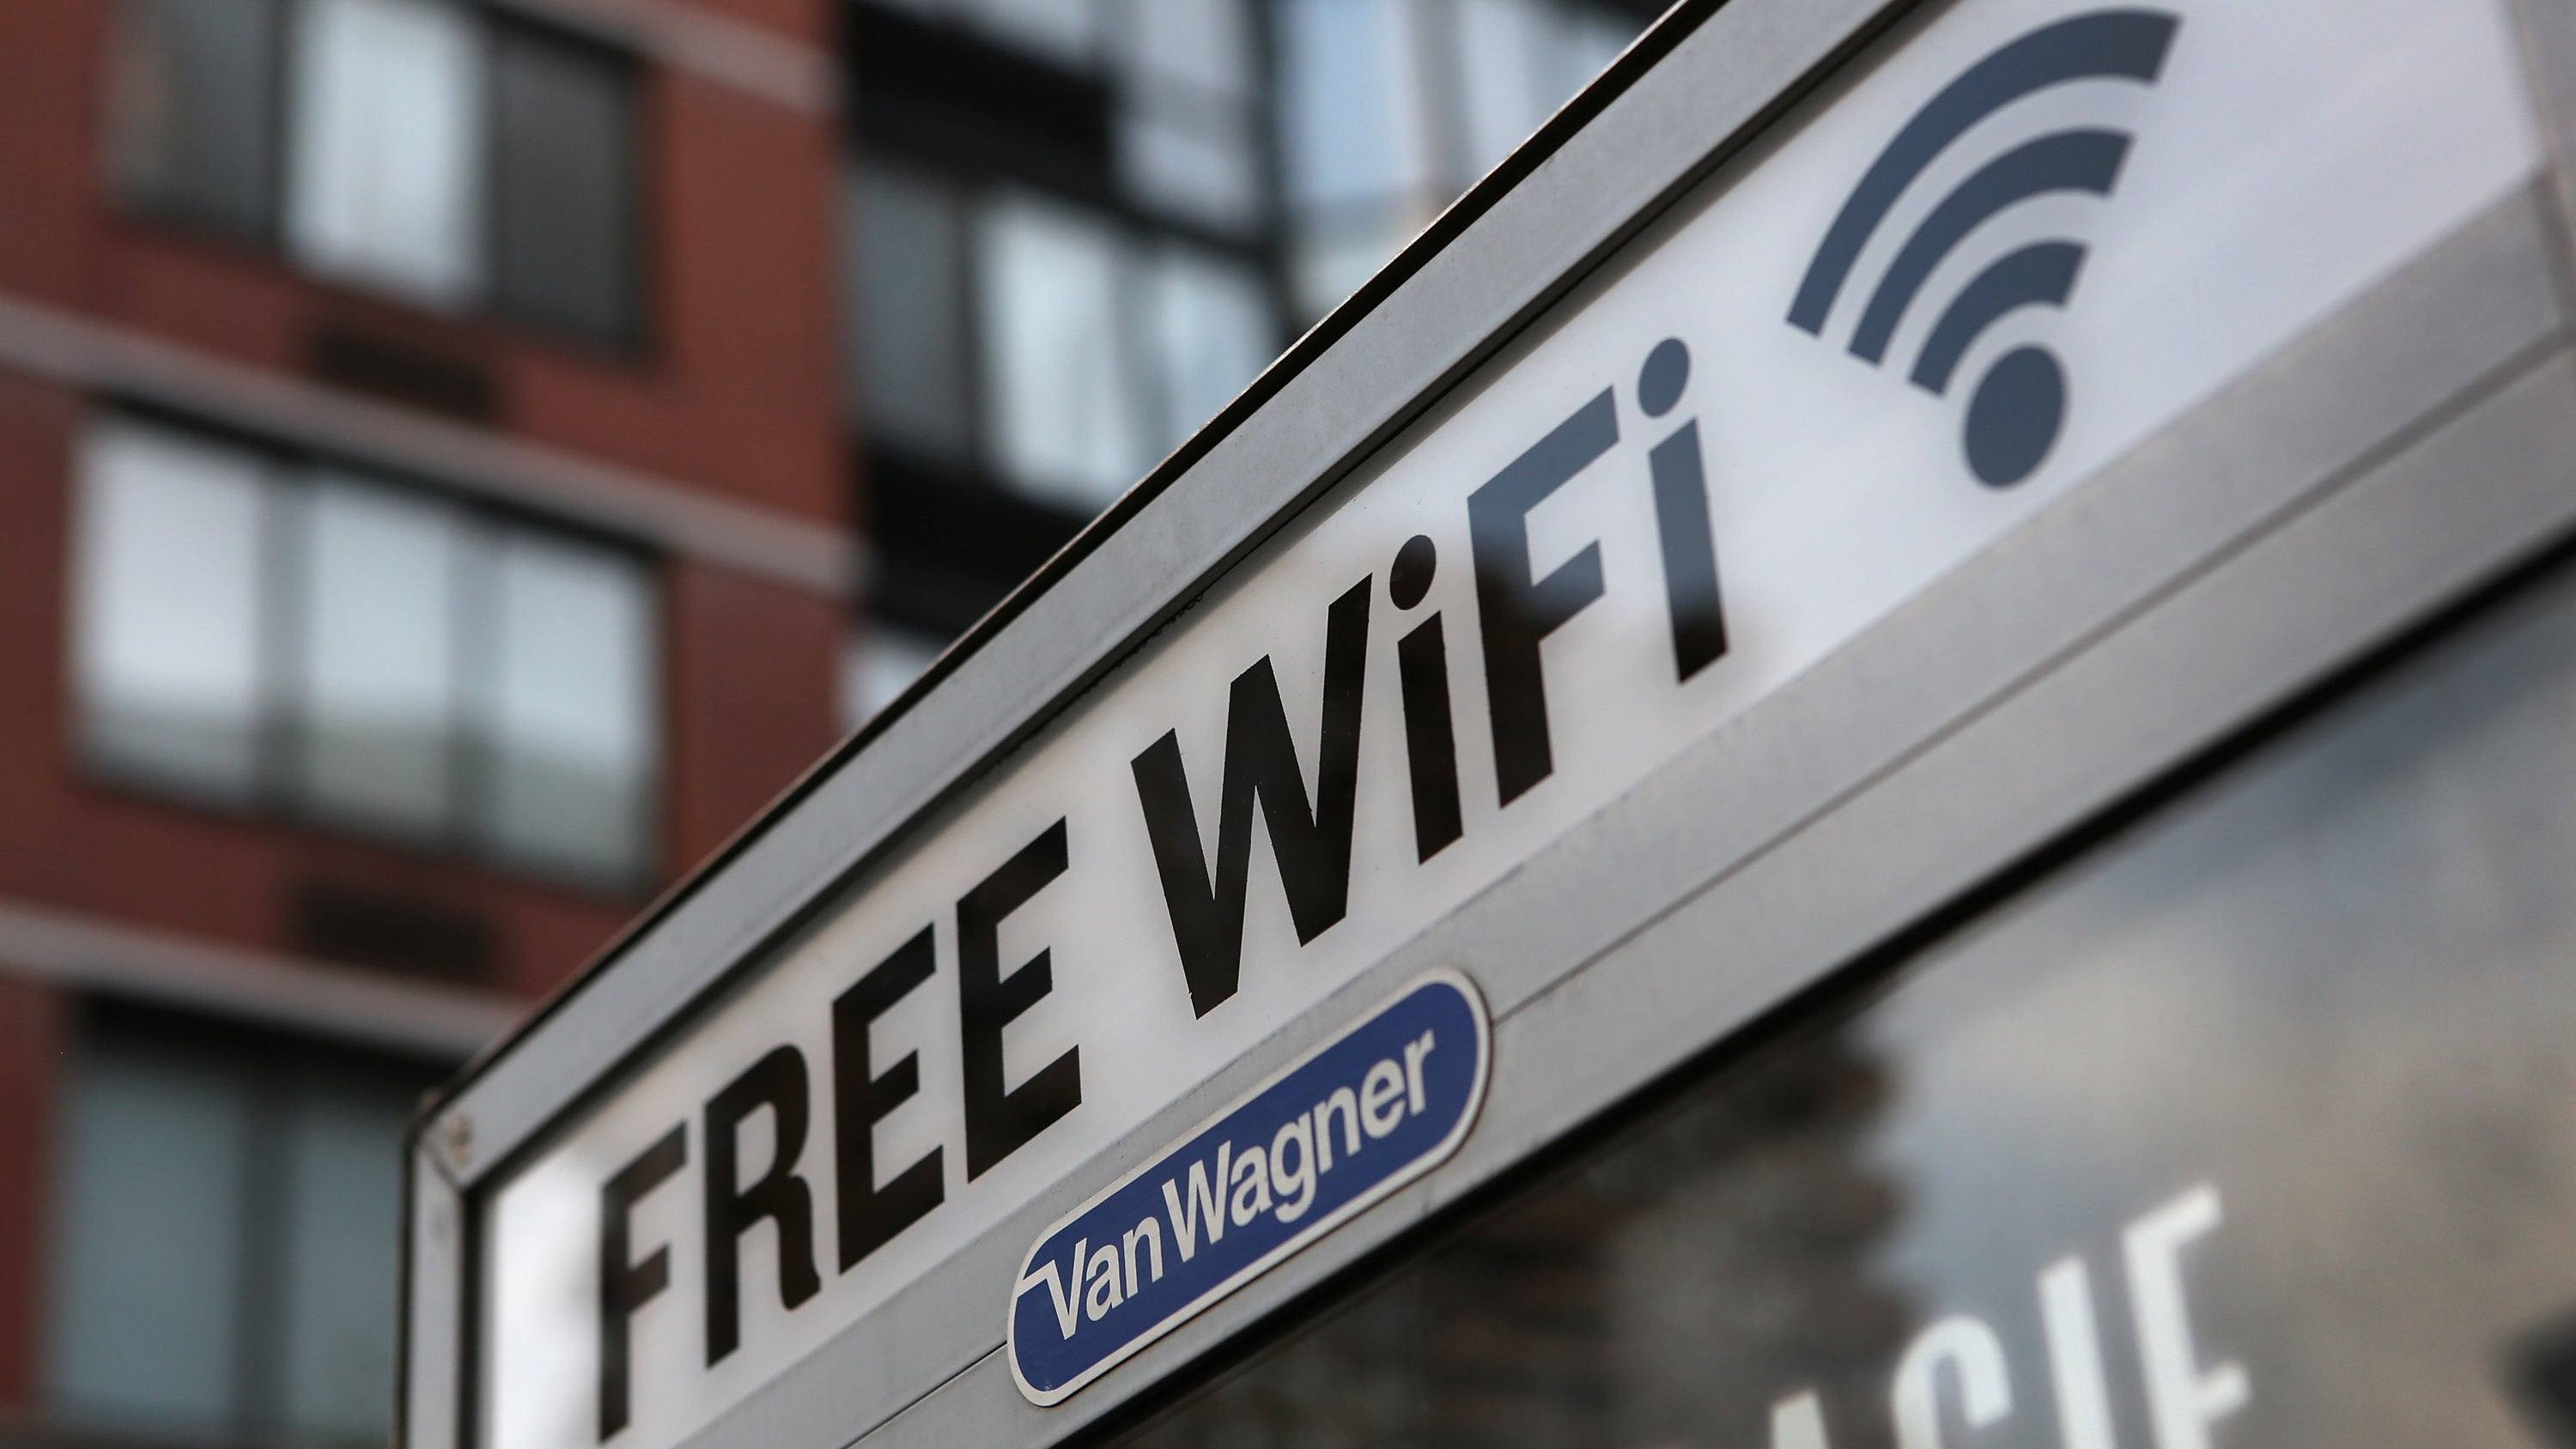 Reminder: Your Wi-Fi Is Vulnerable To Attack - Update Your Devices Now